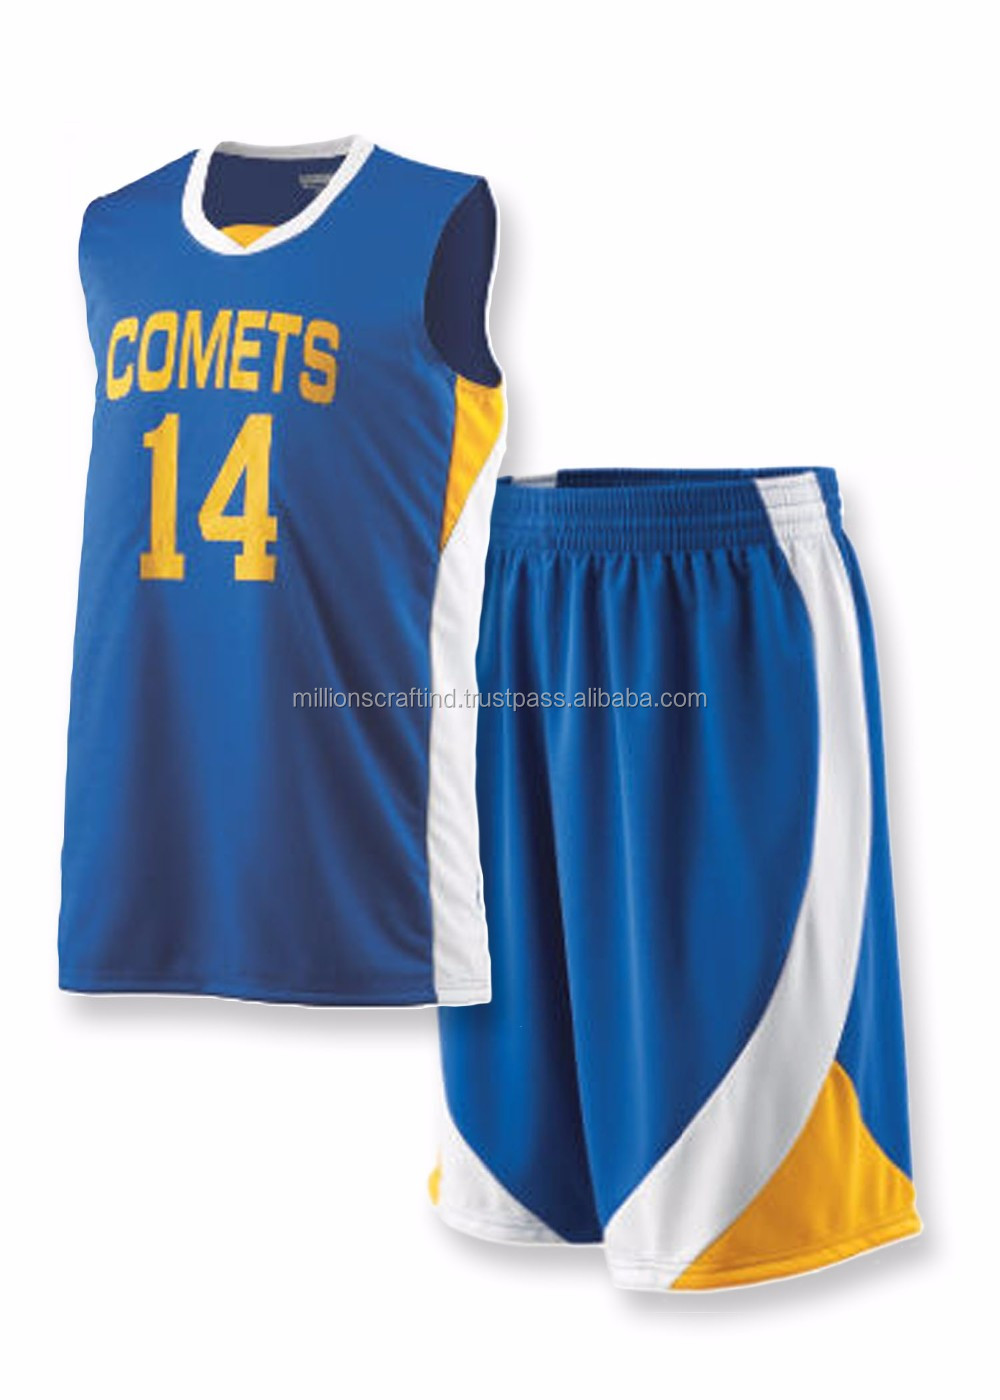 3239680b397 2016 100% Polyester quick dry latest new best design basketball jersey